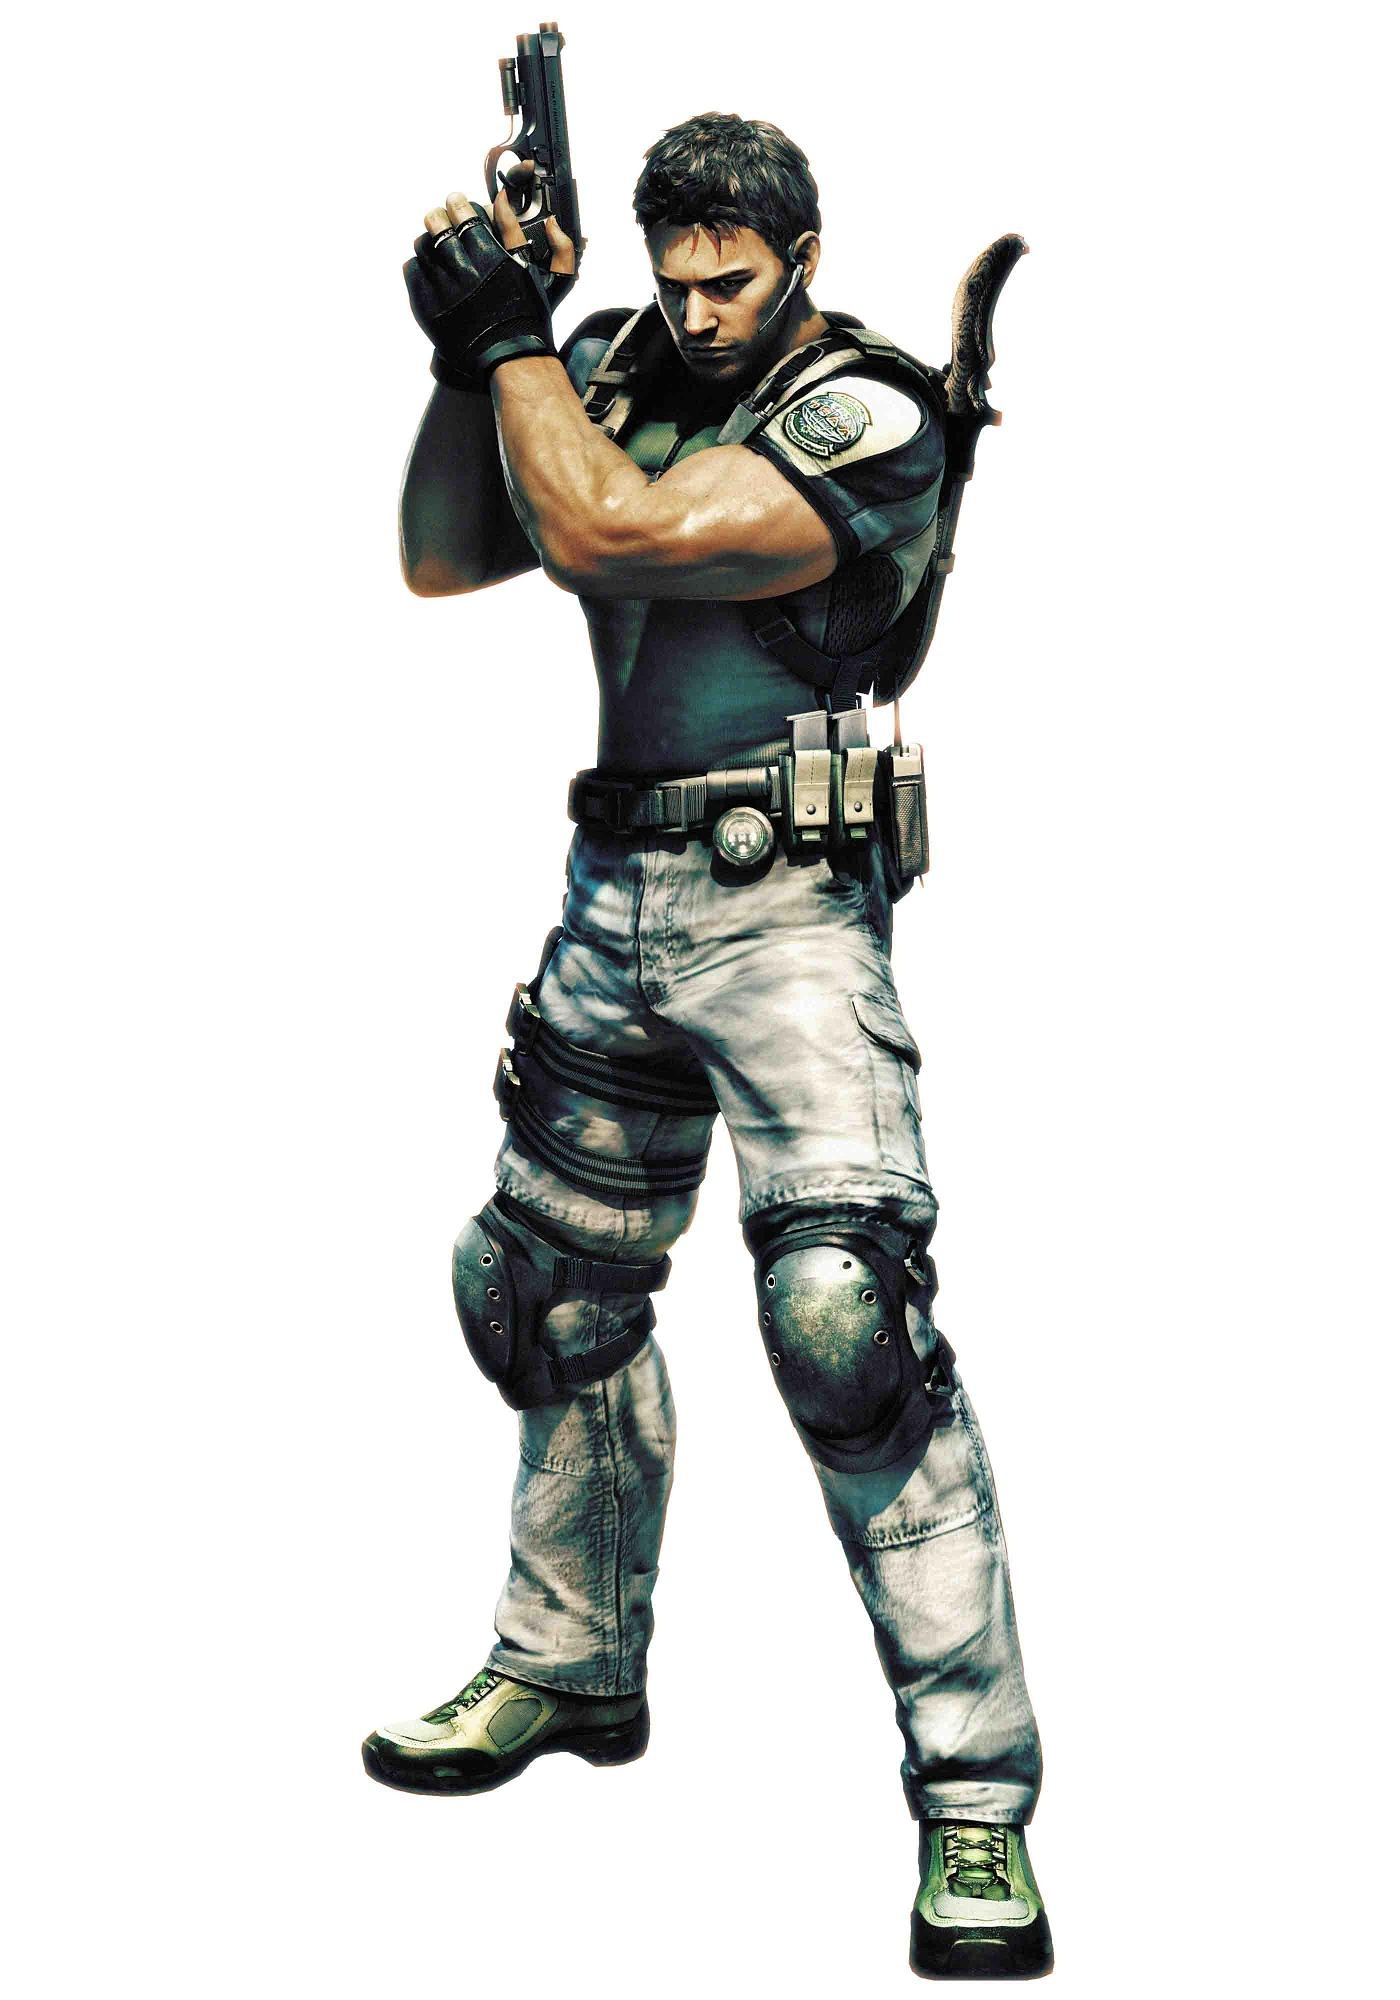 Character breakdown: Chris Redfield